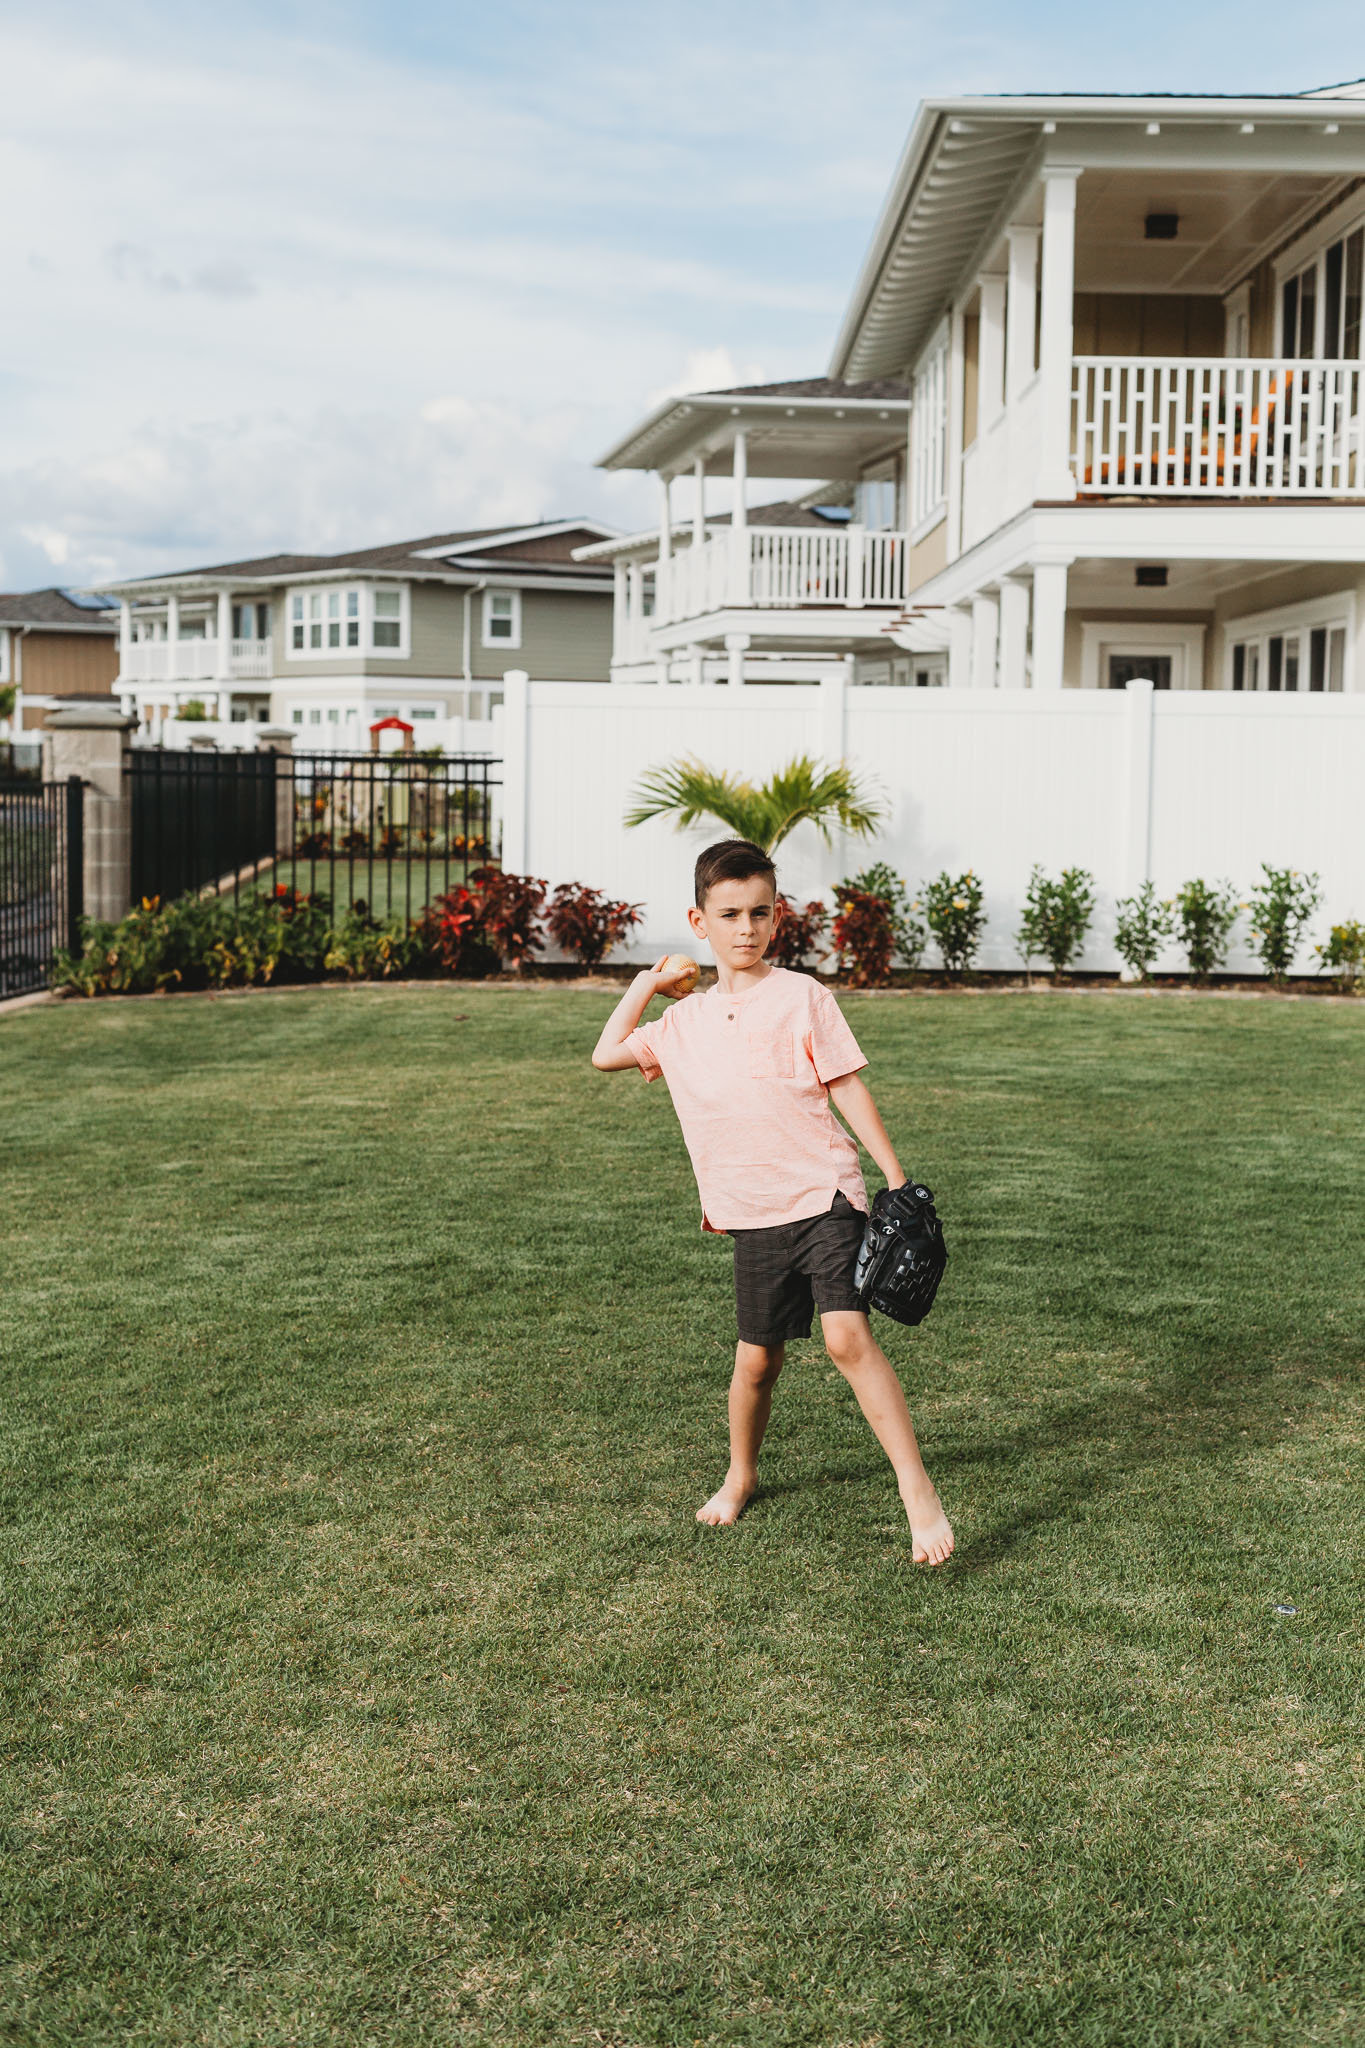 Oahu, Hawaii Lifestyle Photographer - Lifestyle Photography - Brooke Flanagan Photography - Boy playing baseball